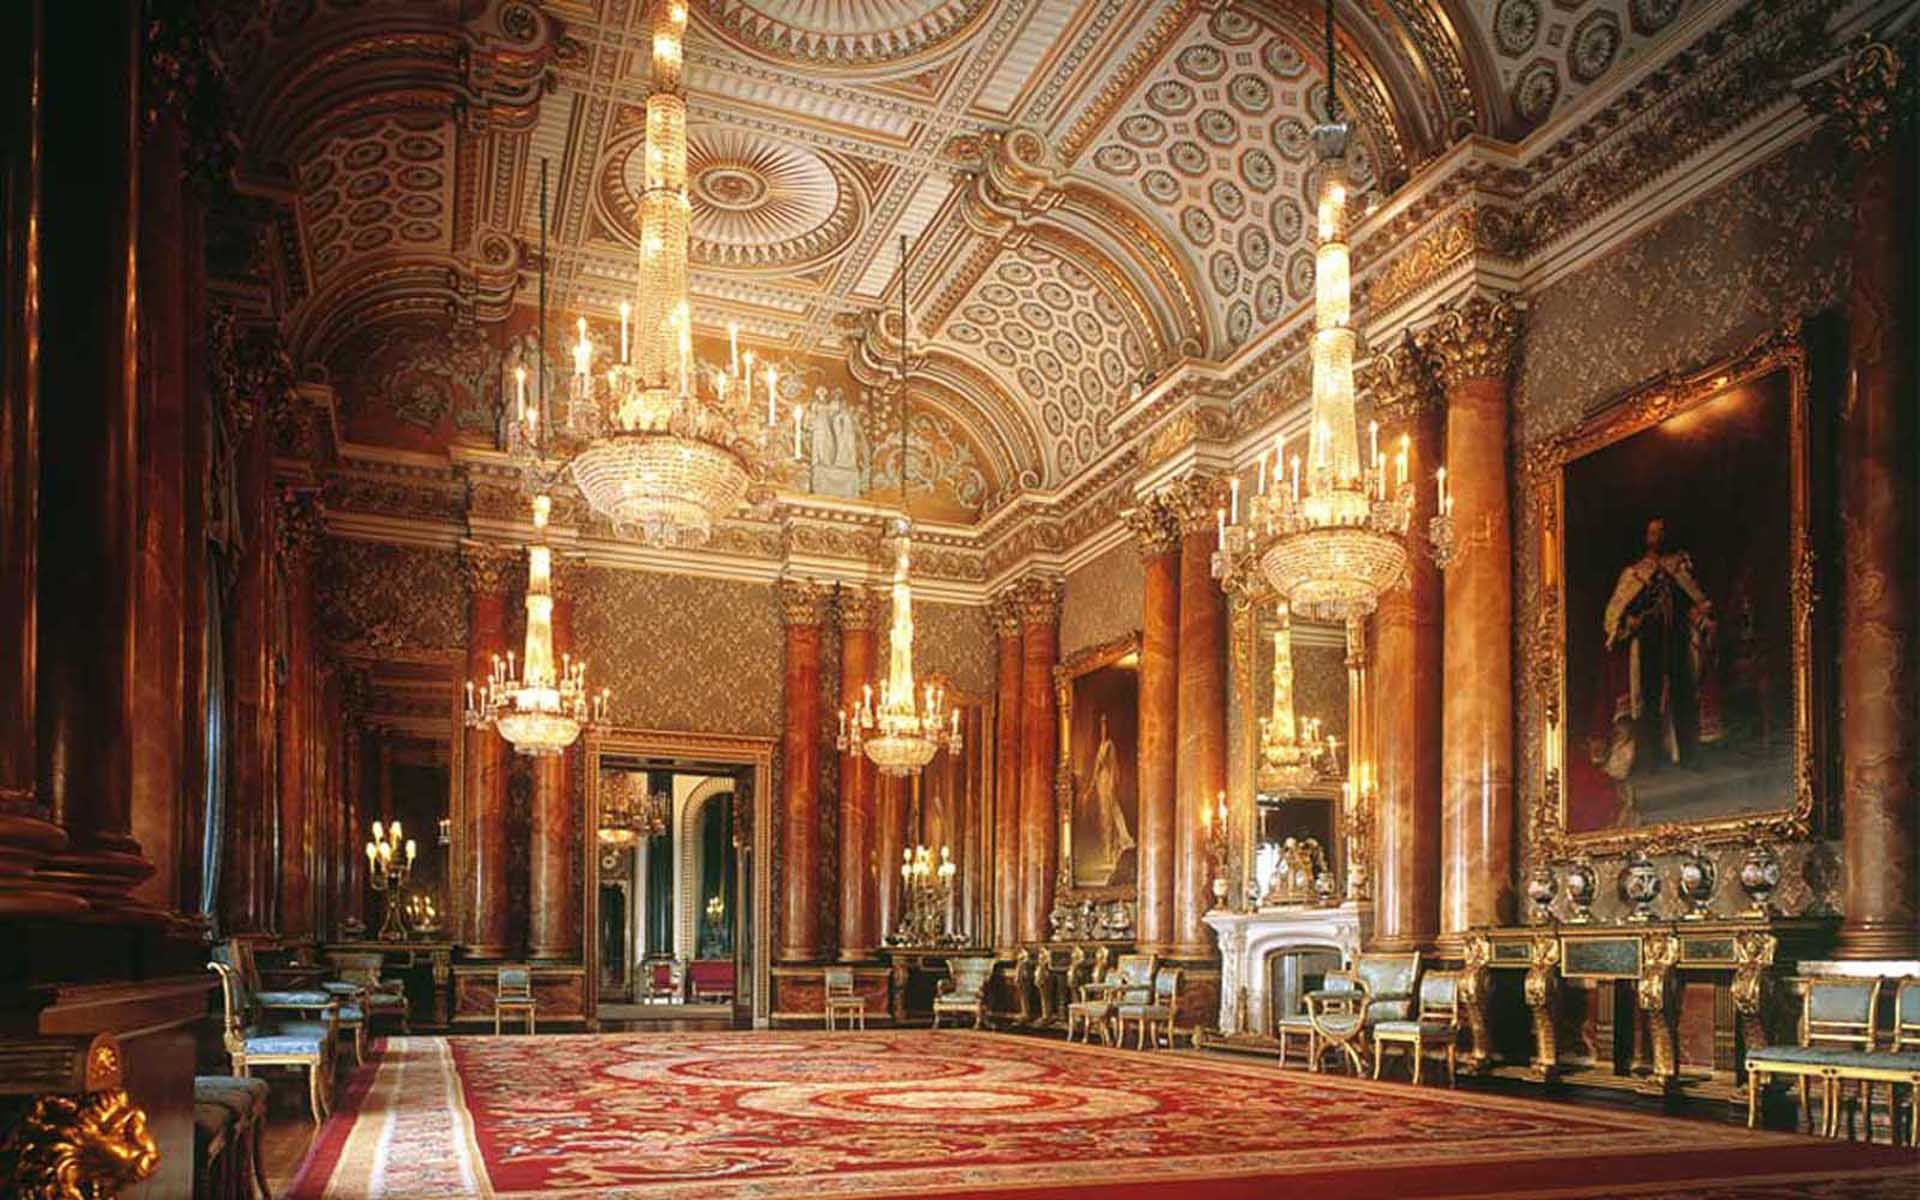 Image detail for -Buckingham Palace Interior 1920x1200 Wallpapers,Buckingham Palace ...